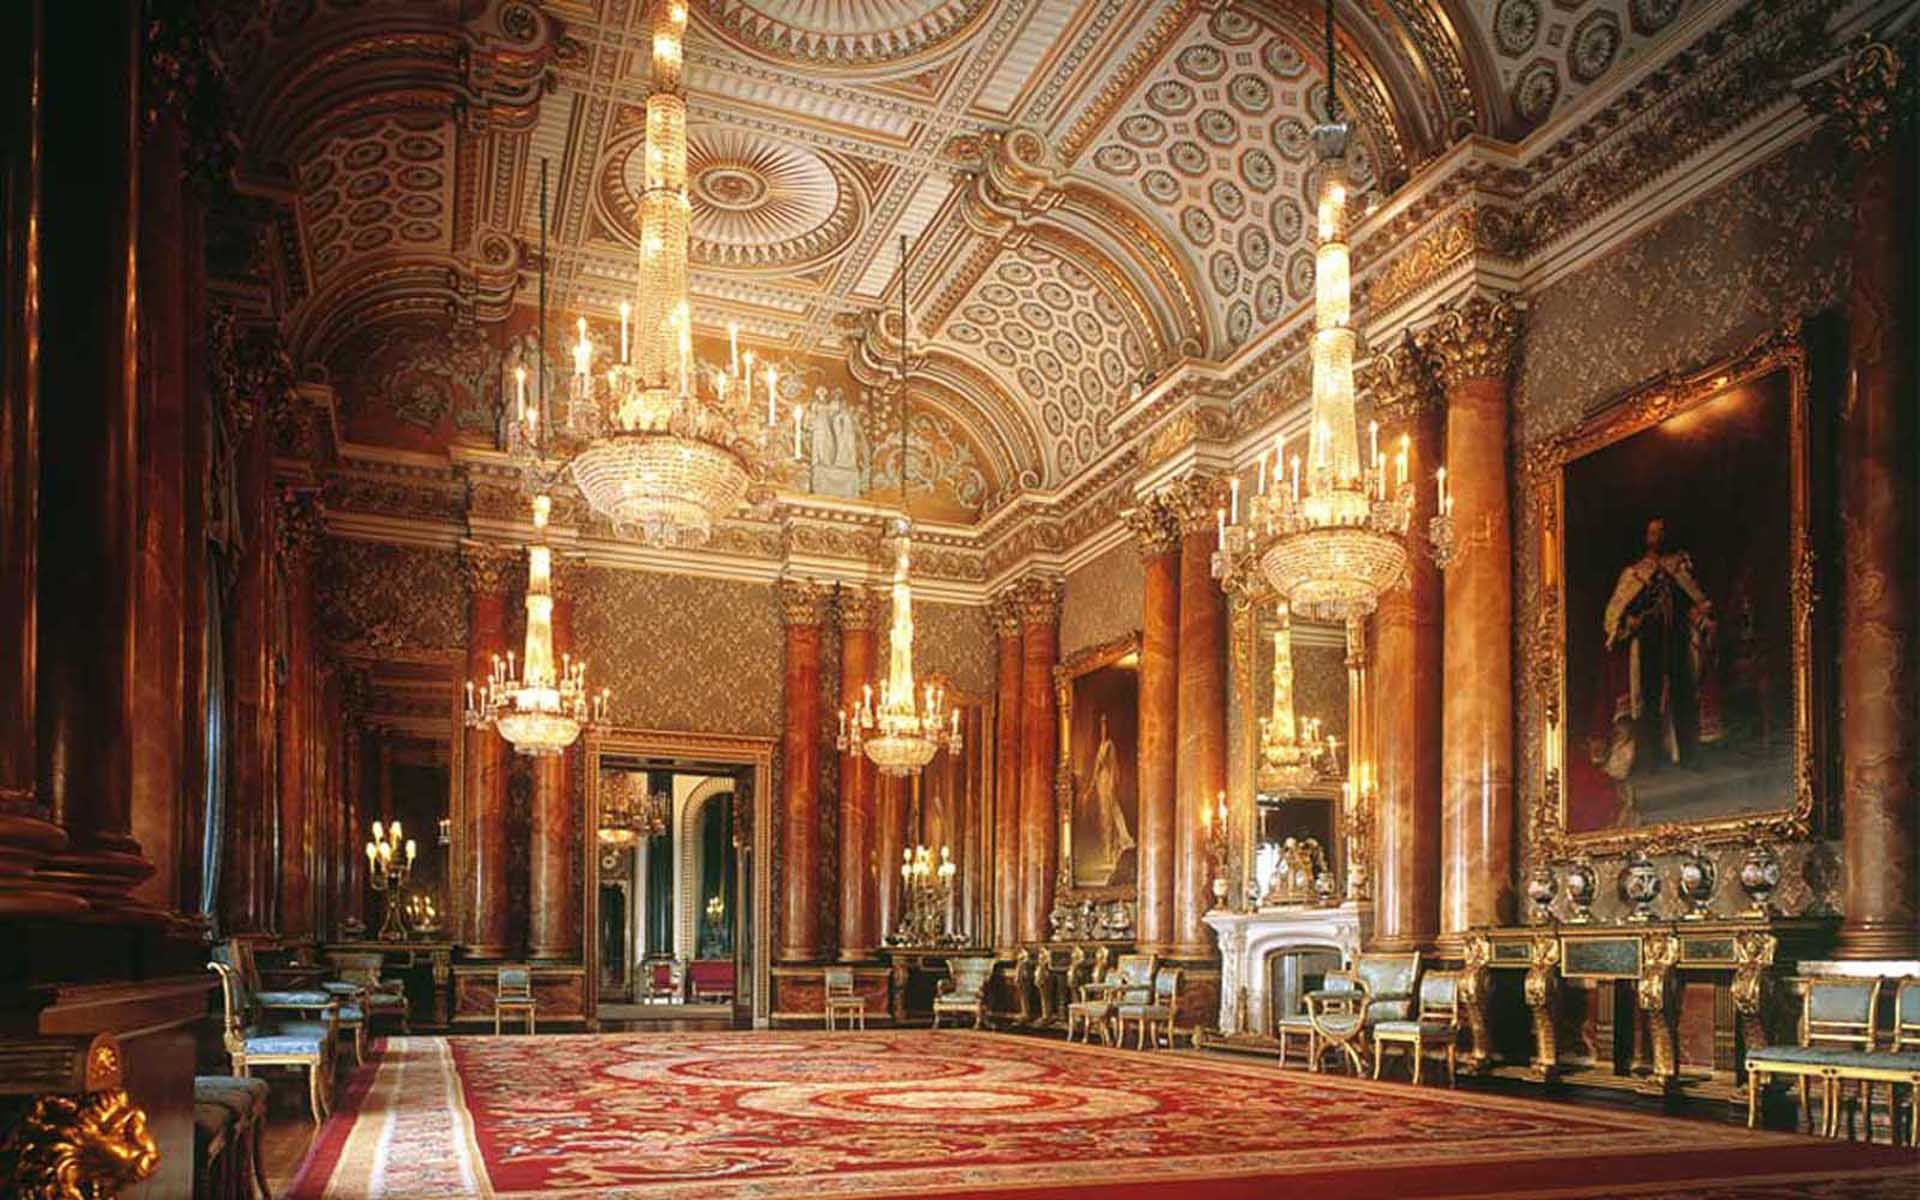 Image detail for -Buckingham Palace Interior 1920x1200 Wallpapers,Buckingham Palace ...